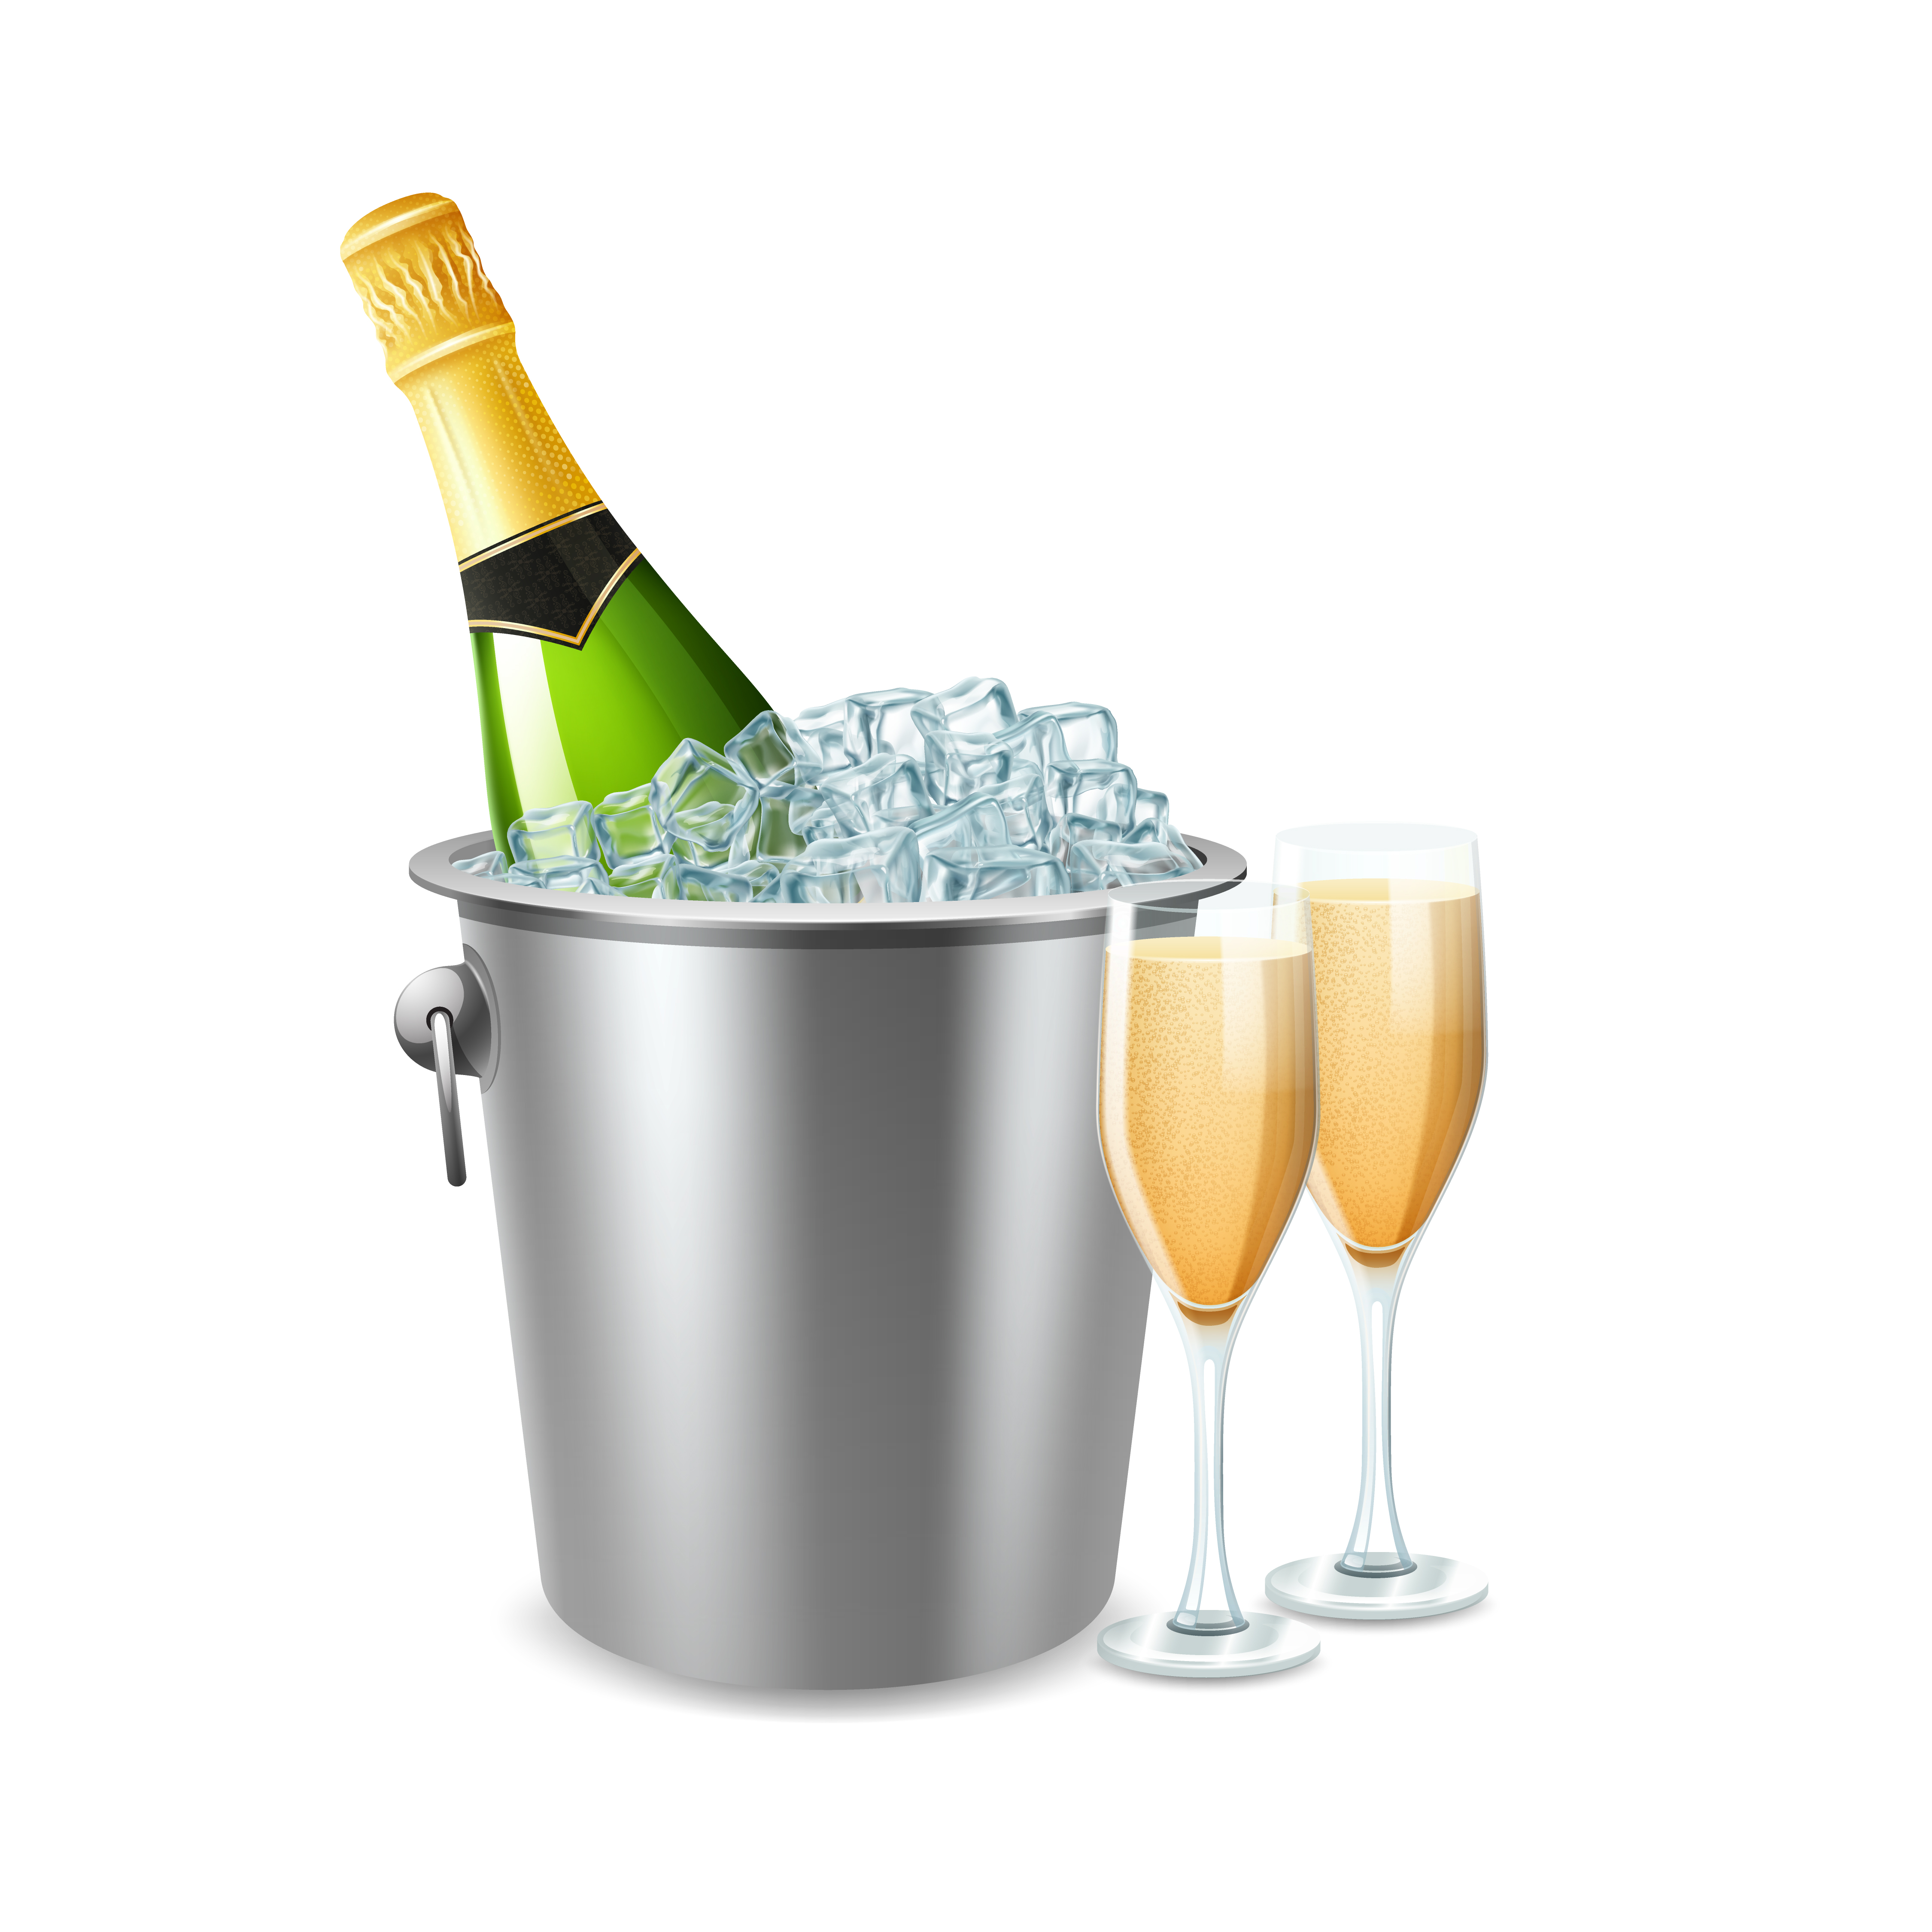 Champagne In Bucket Illustration - Download Free Vectors ...